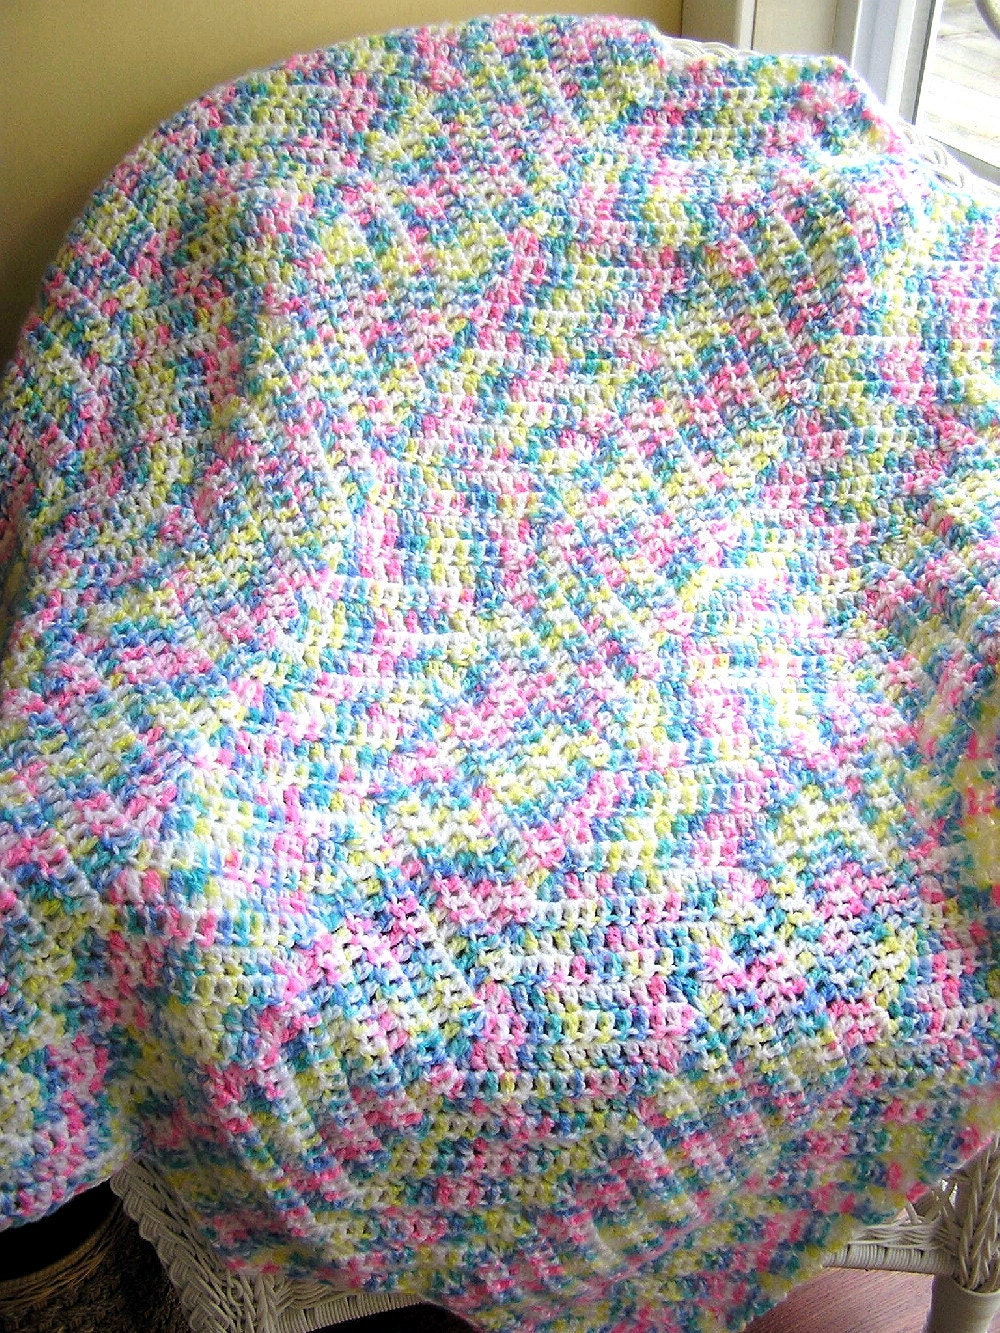 Crochet Zig Zag Baby Blanket : new zig zag baby blanket afghan wrap crochet by JDCrochetCreations